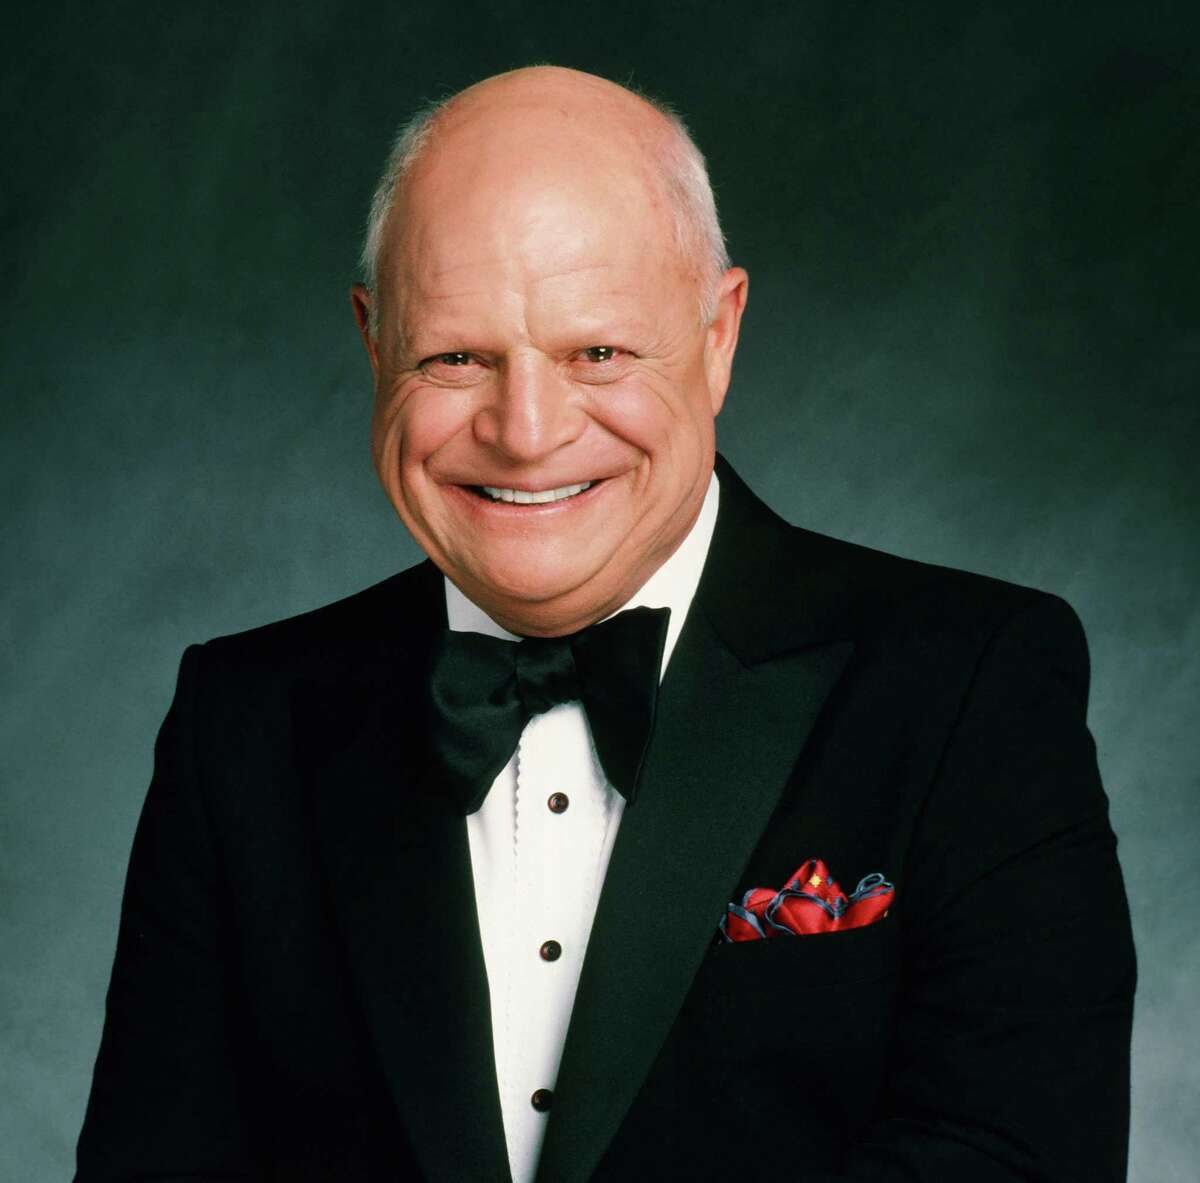 You want insults and comedy, you go see one of the best: Don Rickles is at Foxwoods next Saturday night.